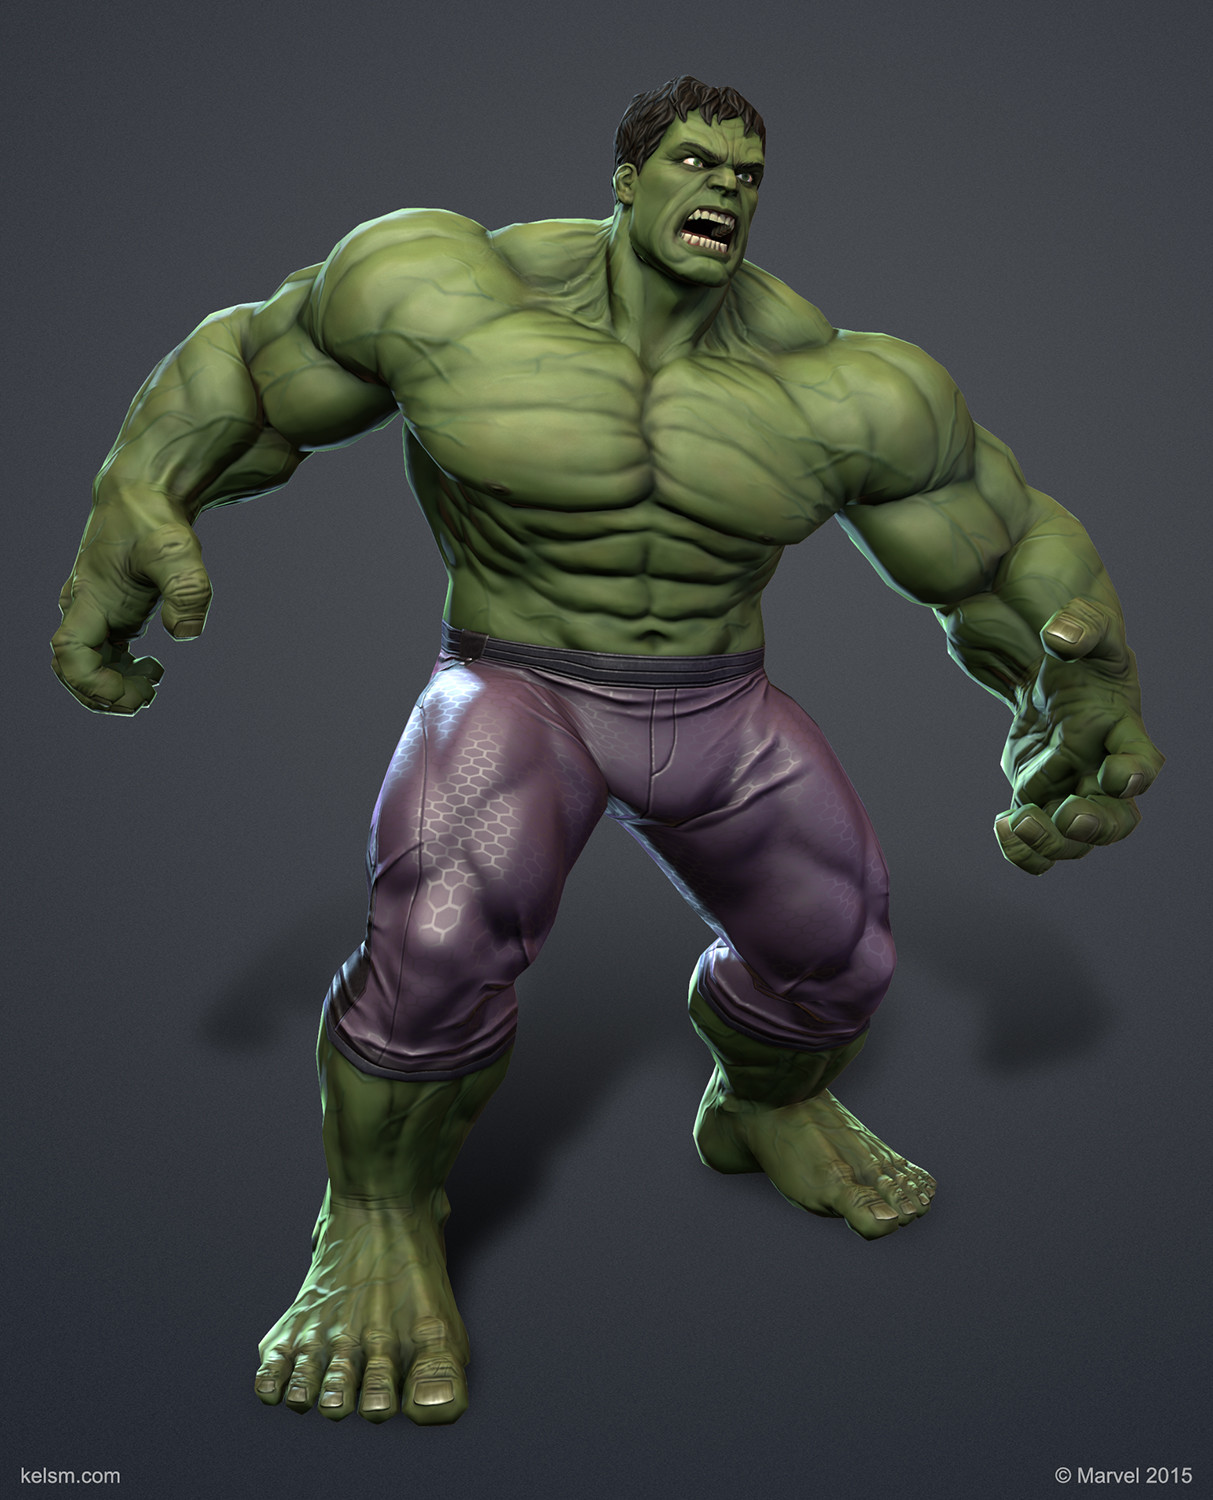 Kelsey martin hulk02 beauty